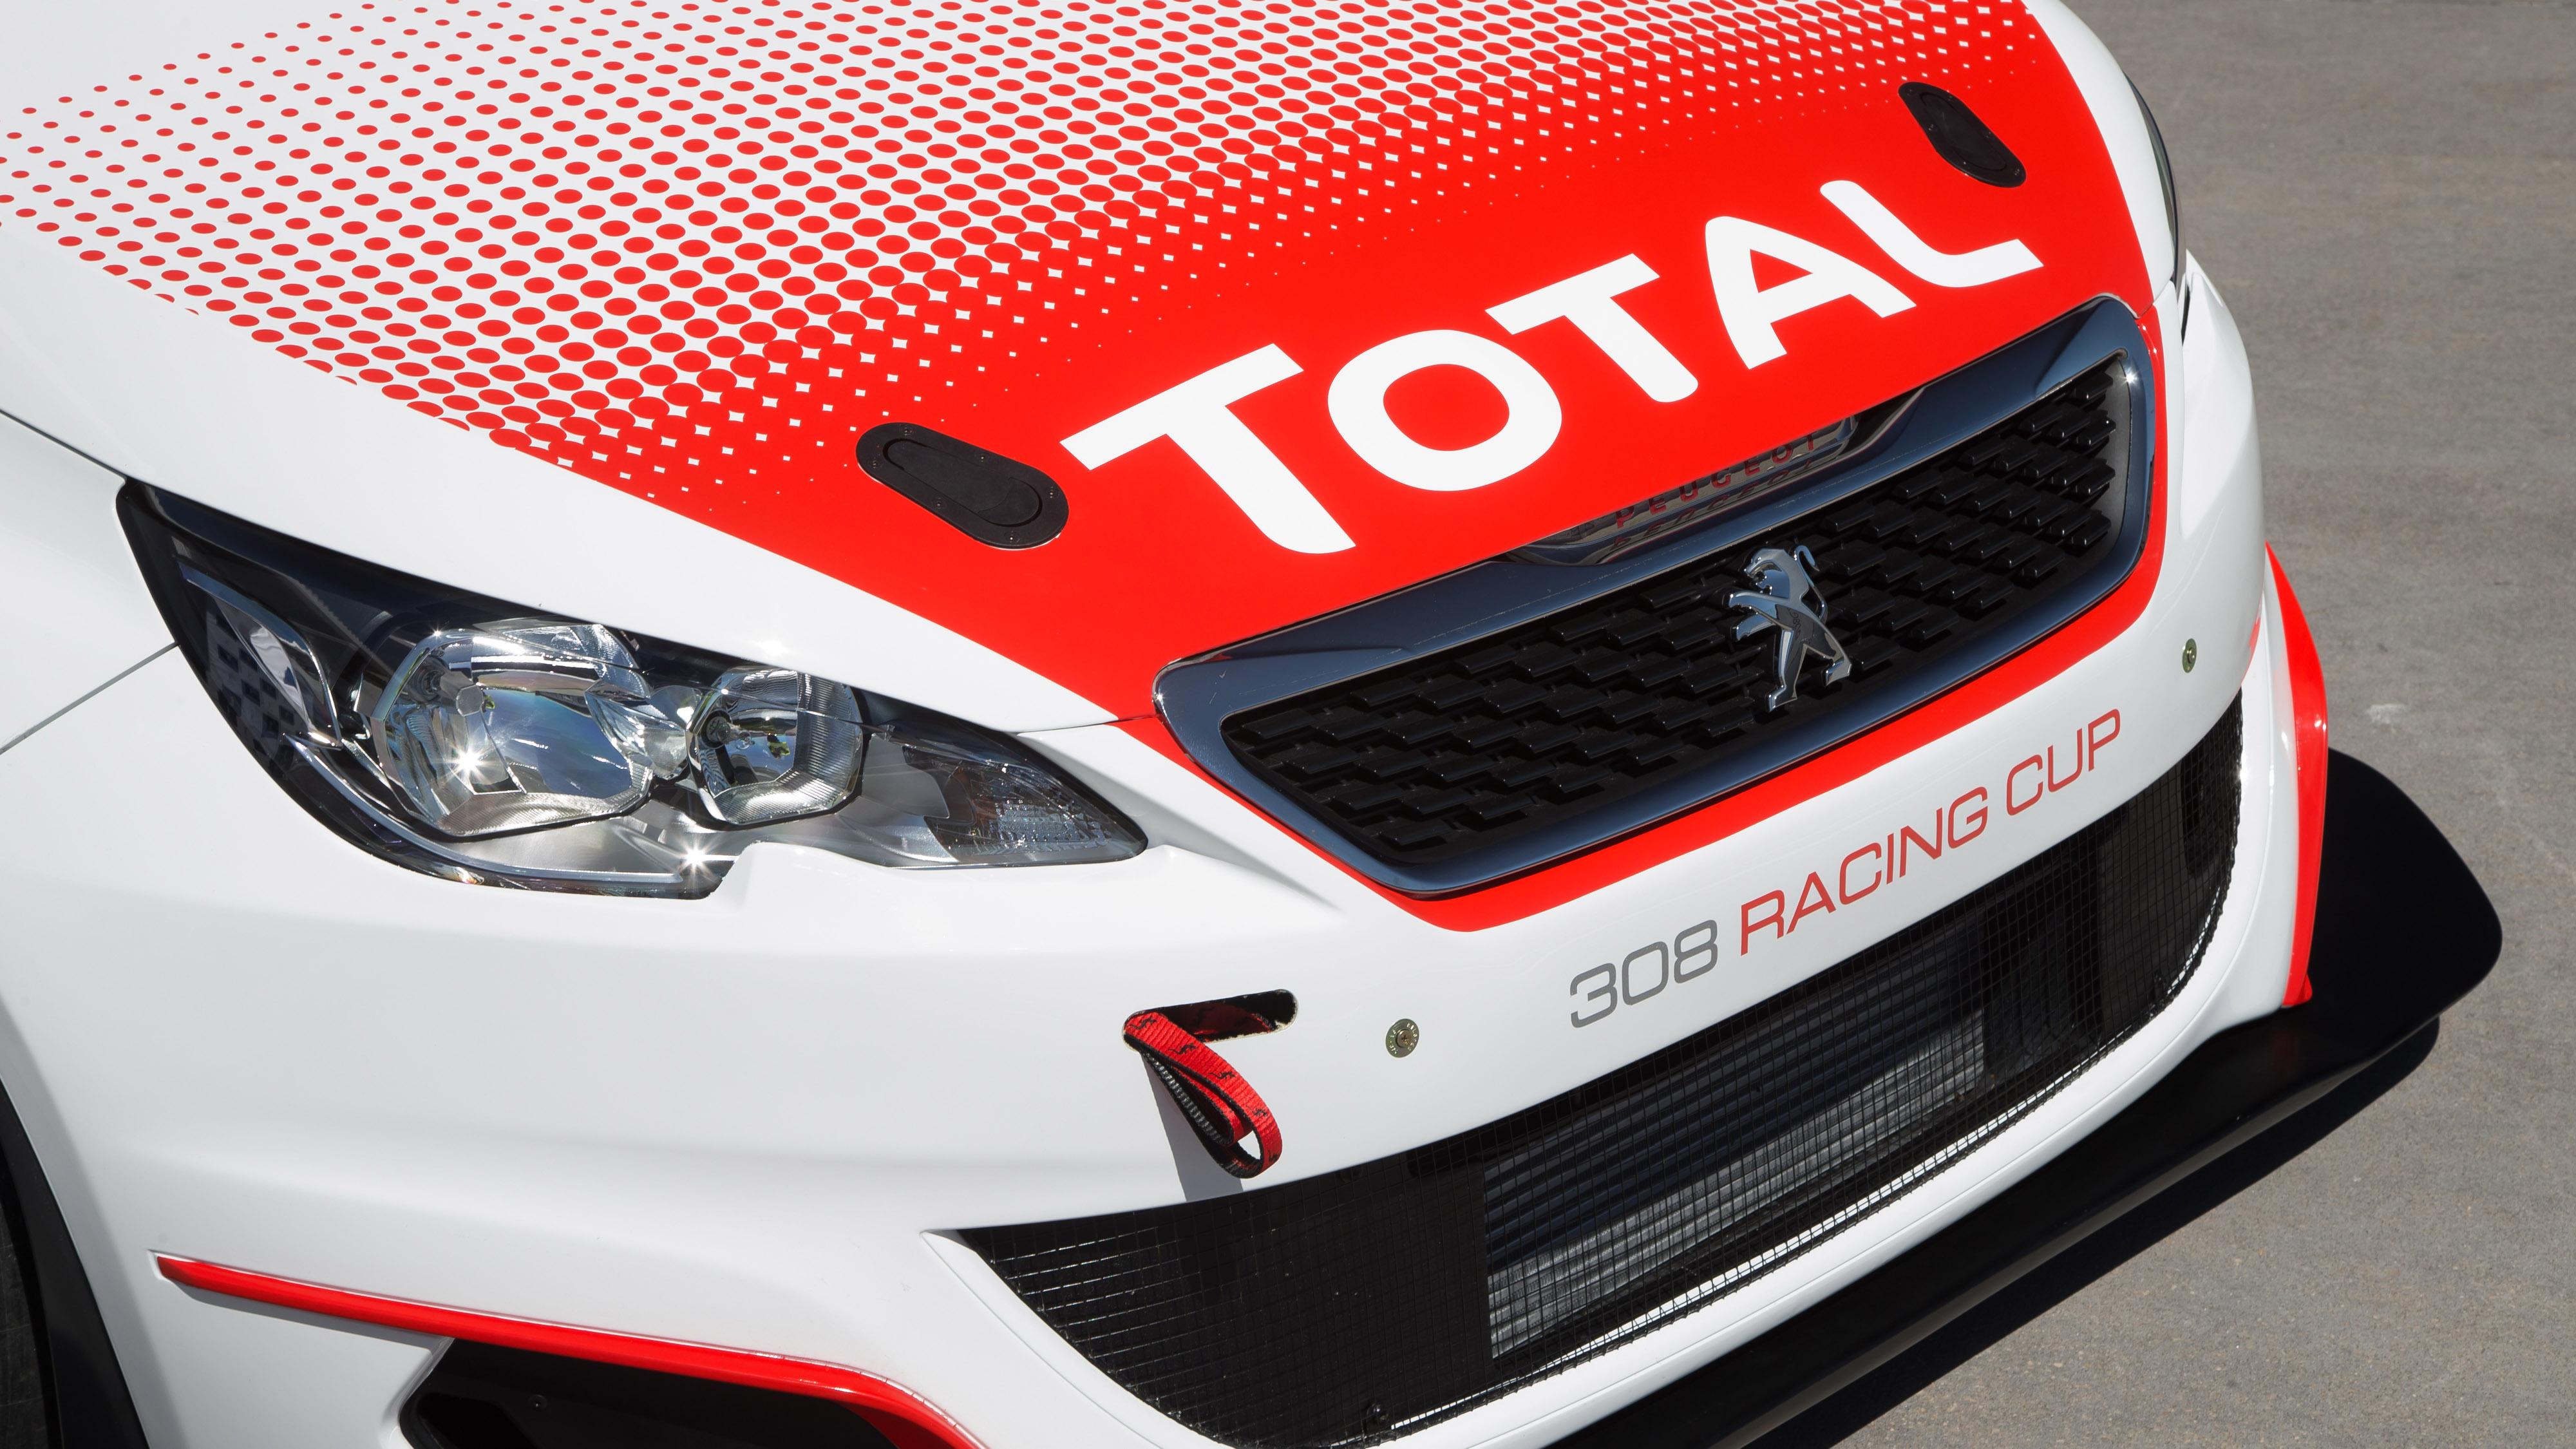 Peugeot 308 GTI Racing Cup front